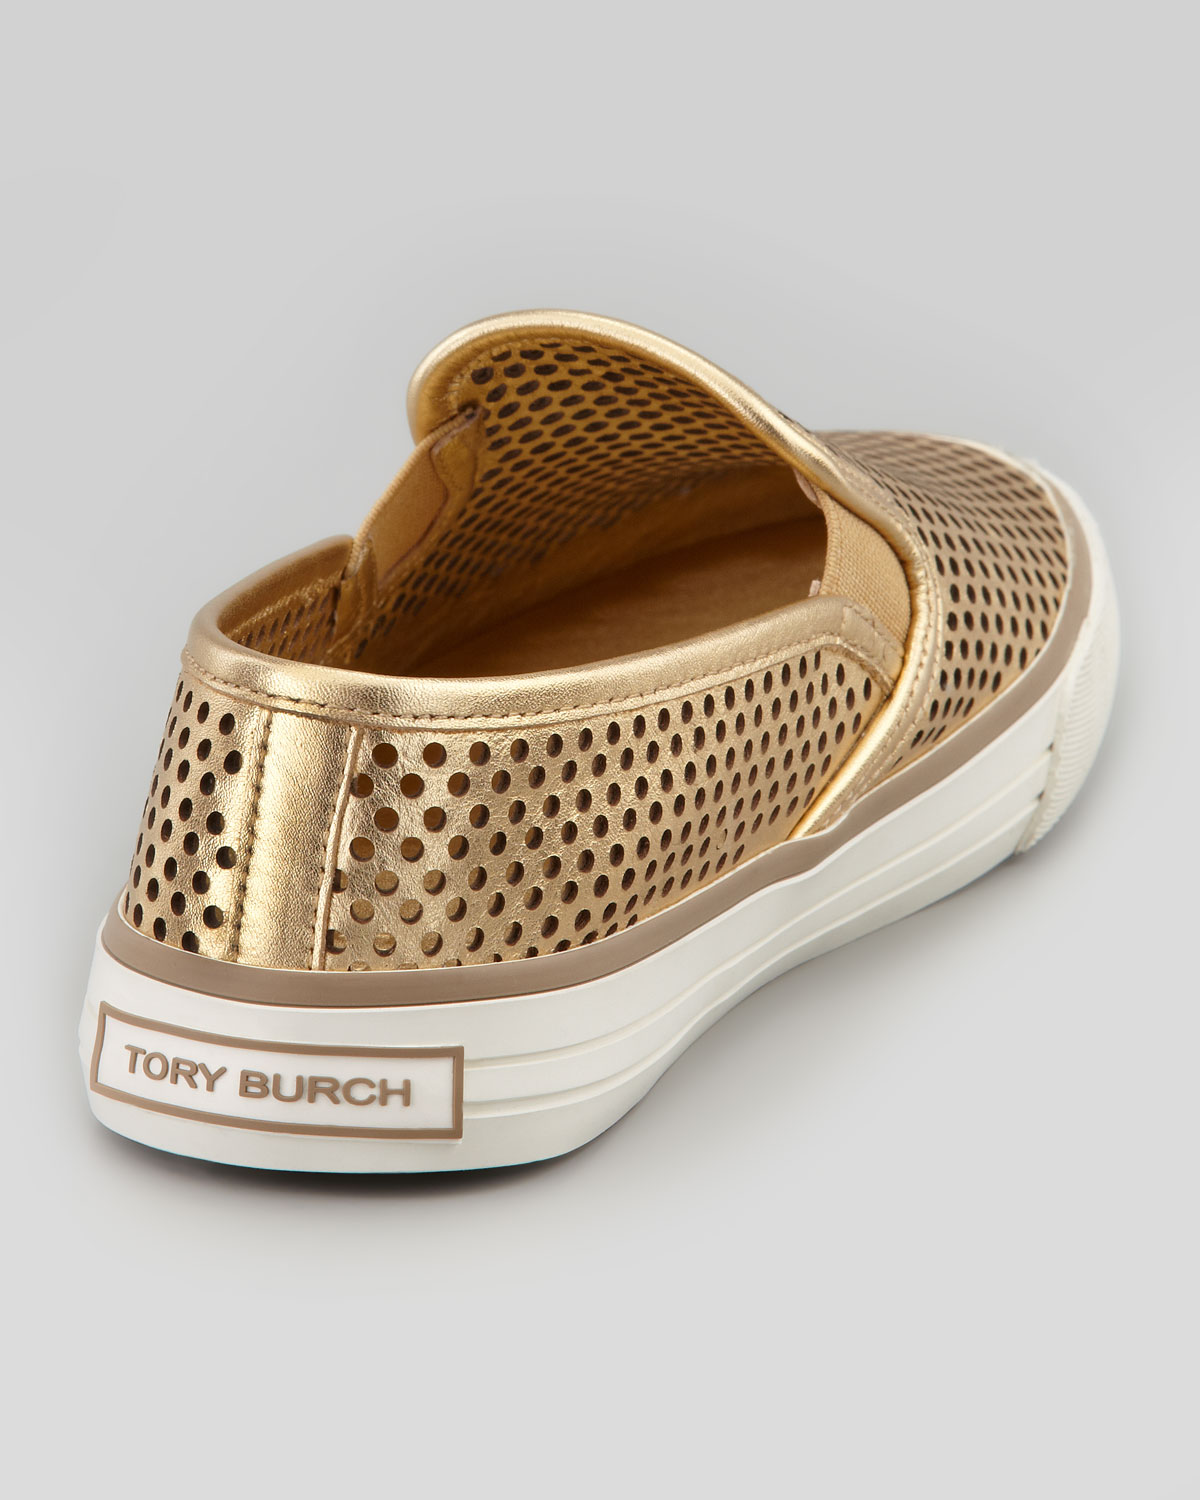 289553f00ff005 Lyst - Tory Burch Miles Perforated Slip-on Sneaker Gold in Metallic